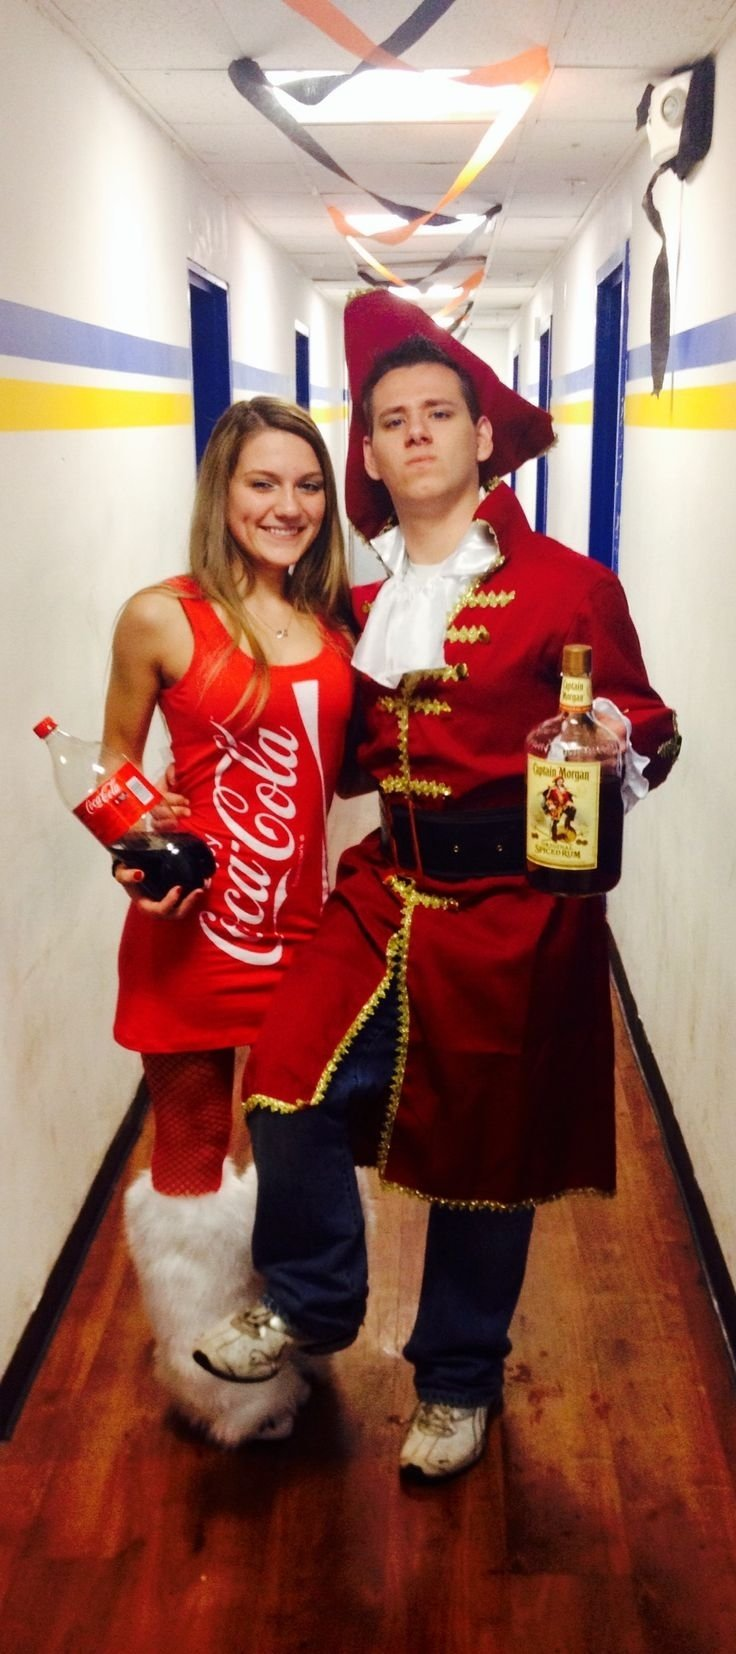 10 Amazing Great Costume Ideas For Couples 63 best pirate costumes ahoy images on pinterest adult costumes 3 2020